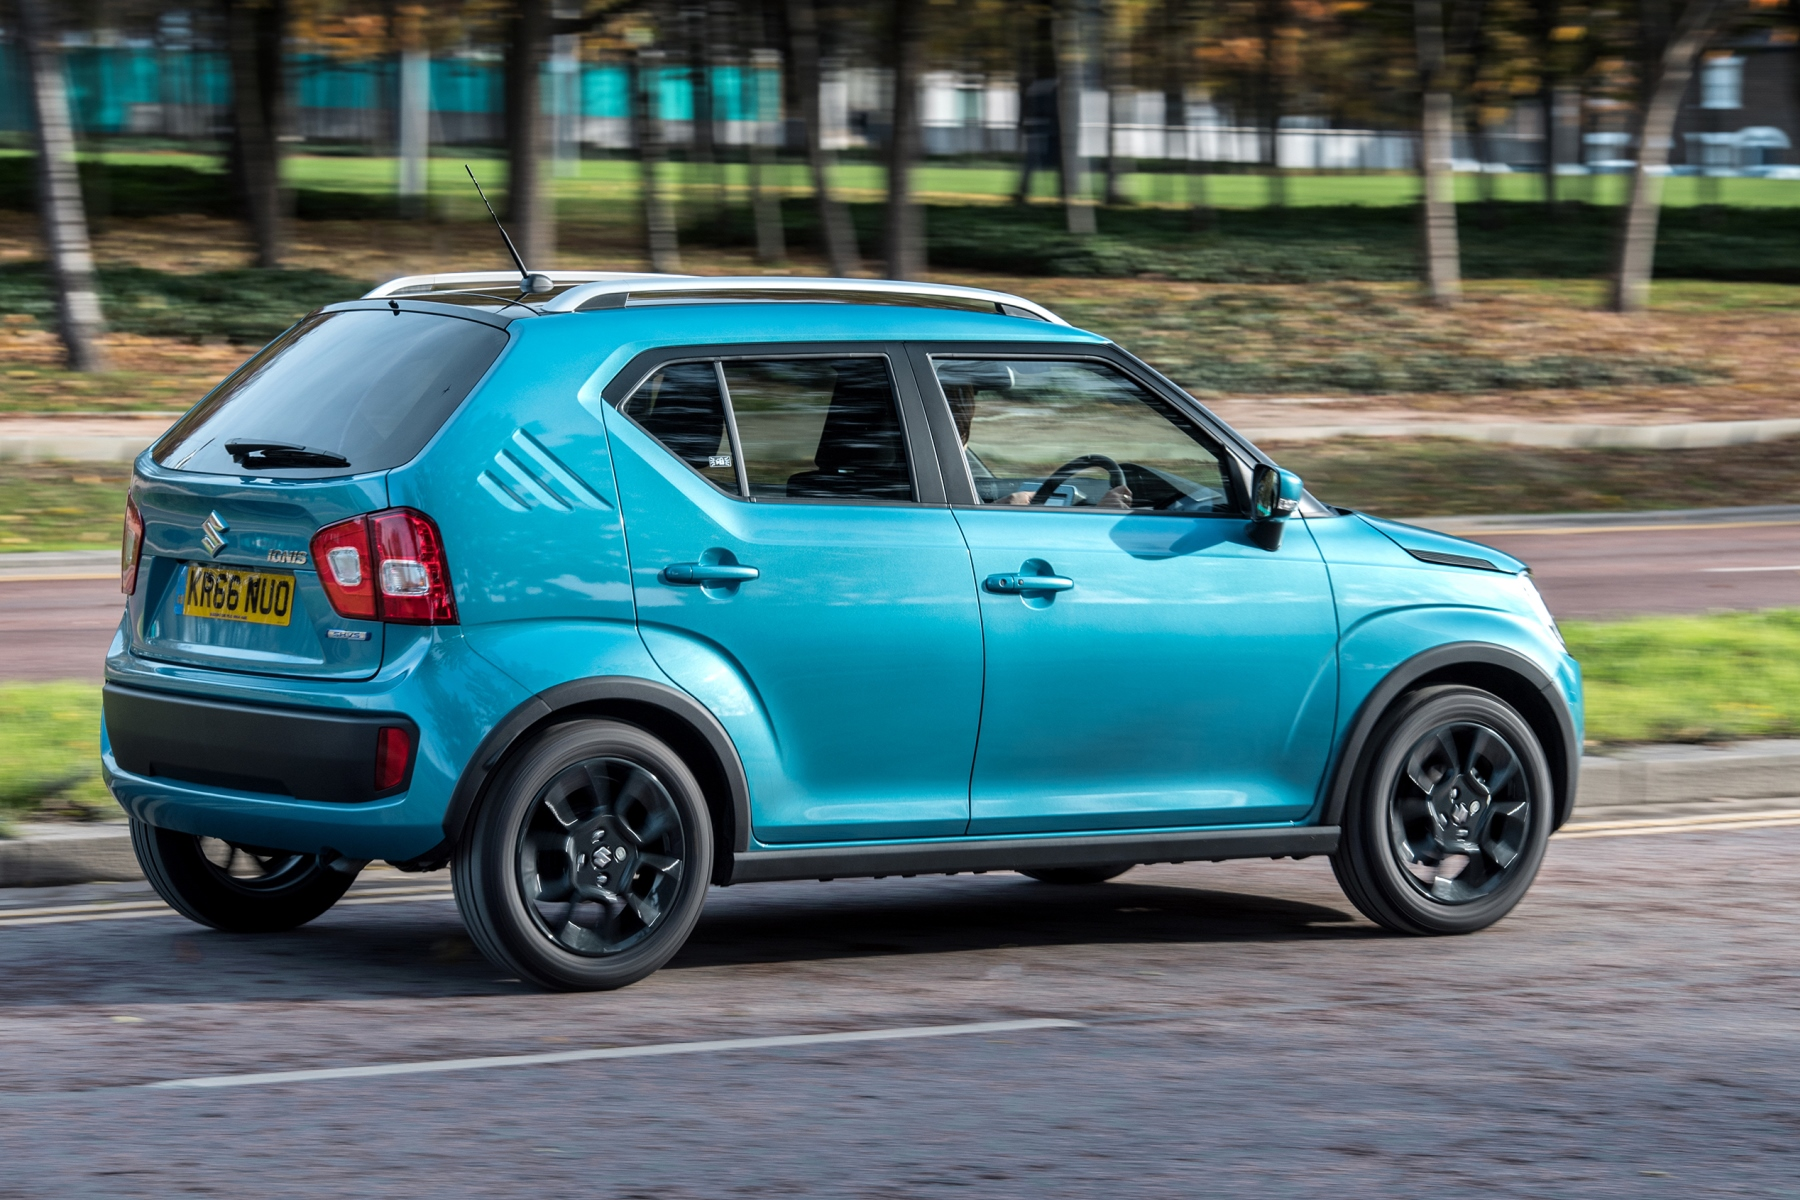 2018 Suzuki Car >> Suzuki Ignis review – Automotive Blog